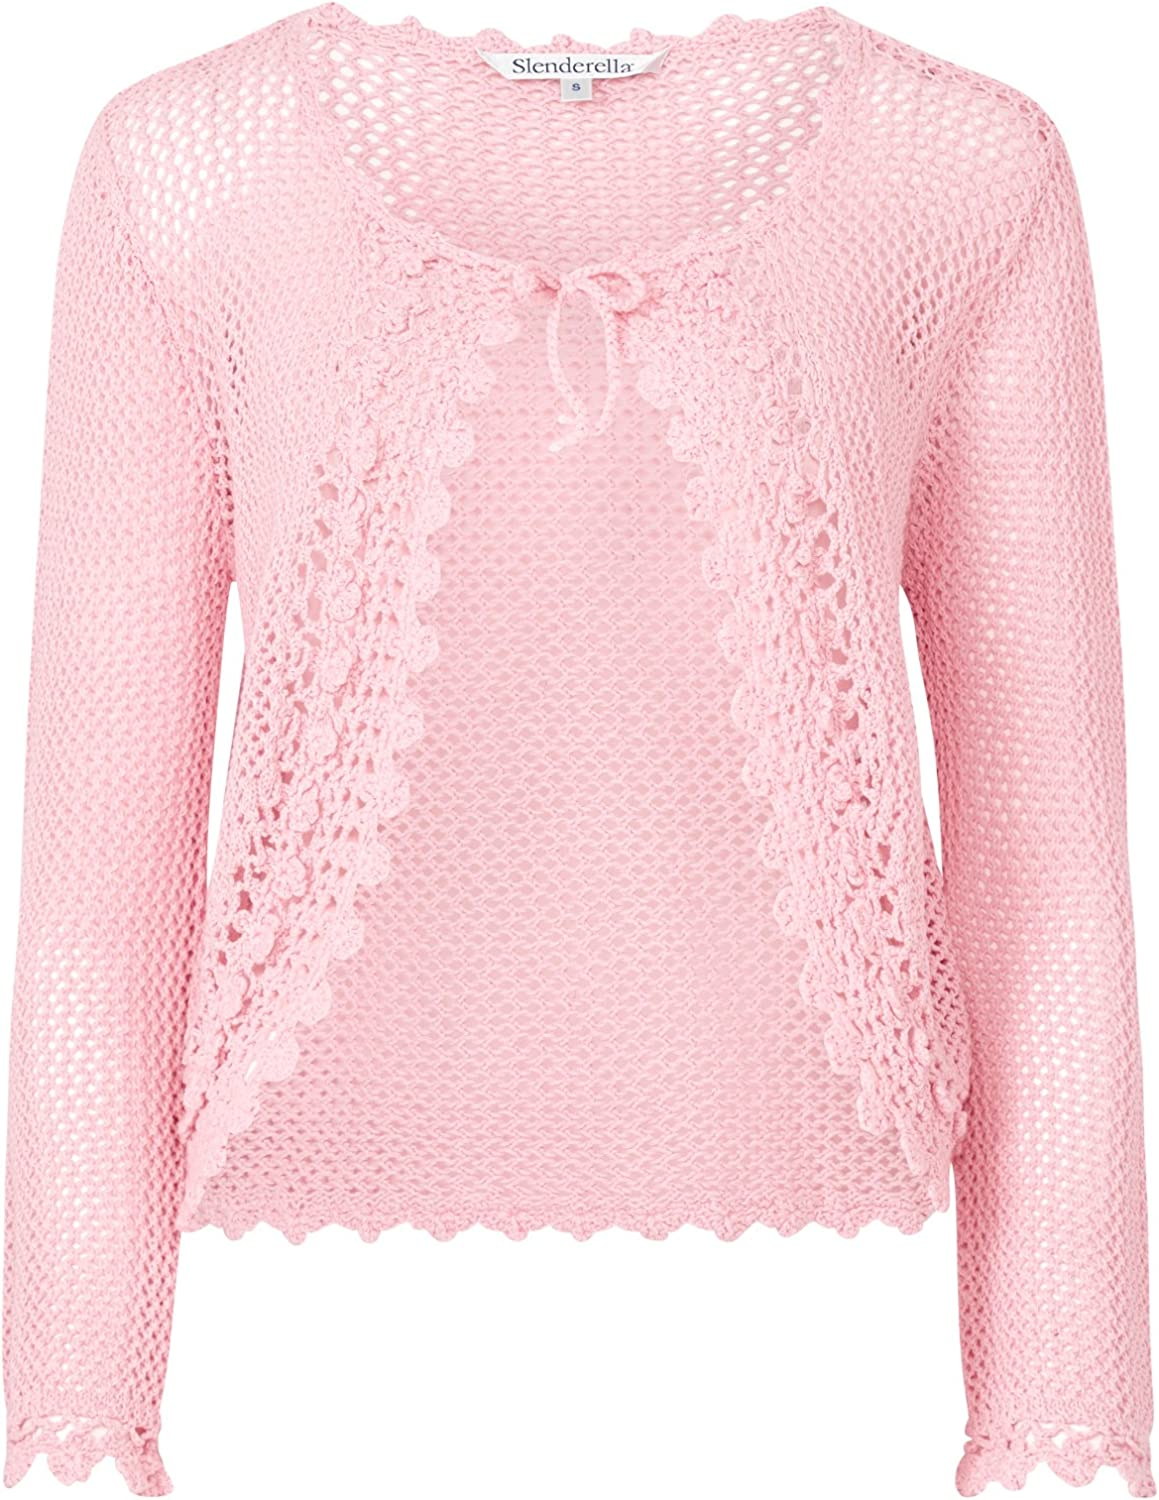 Slenderella Womens 100% Knitted Cotton Bed Jacket Crochet Edge Tie Front House Coat (bluee or Pink)